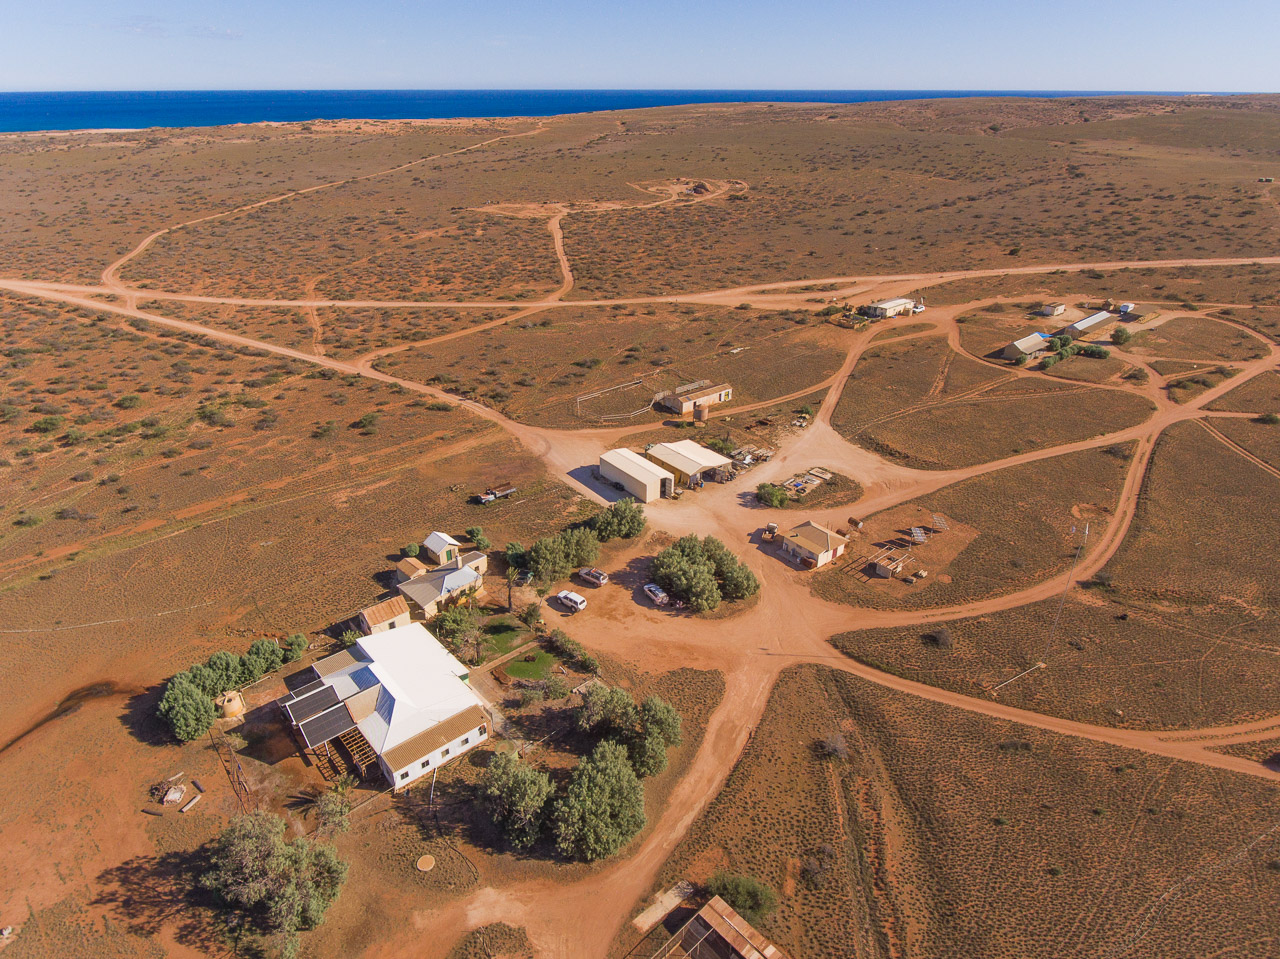 Aerial photo of the homestead and station buildings, looking towards the west coast at Warroora Station in Western Australia